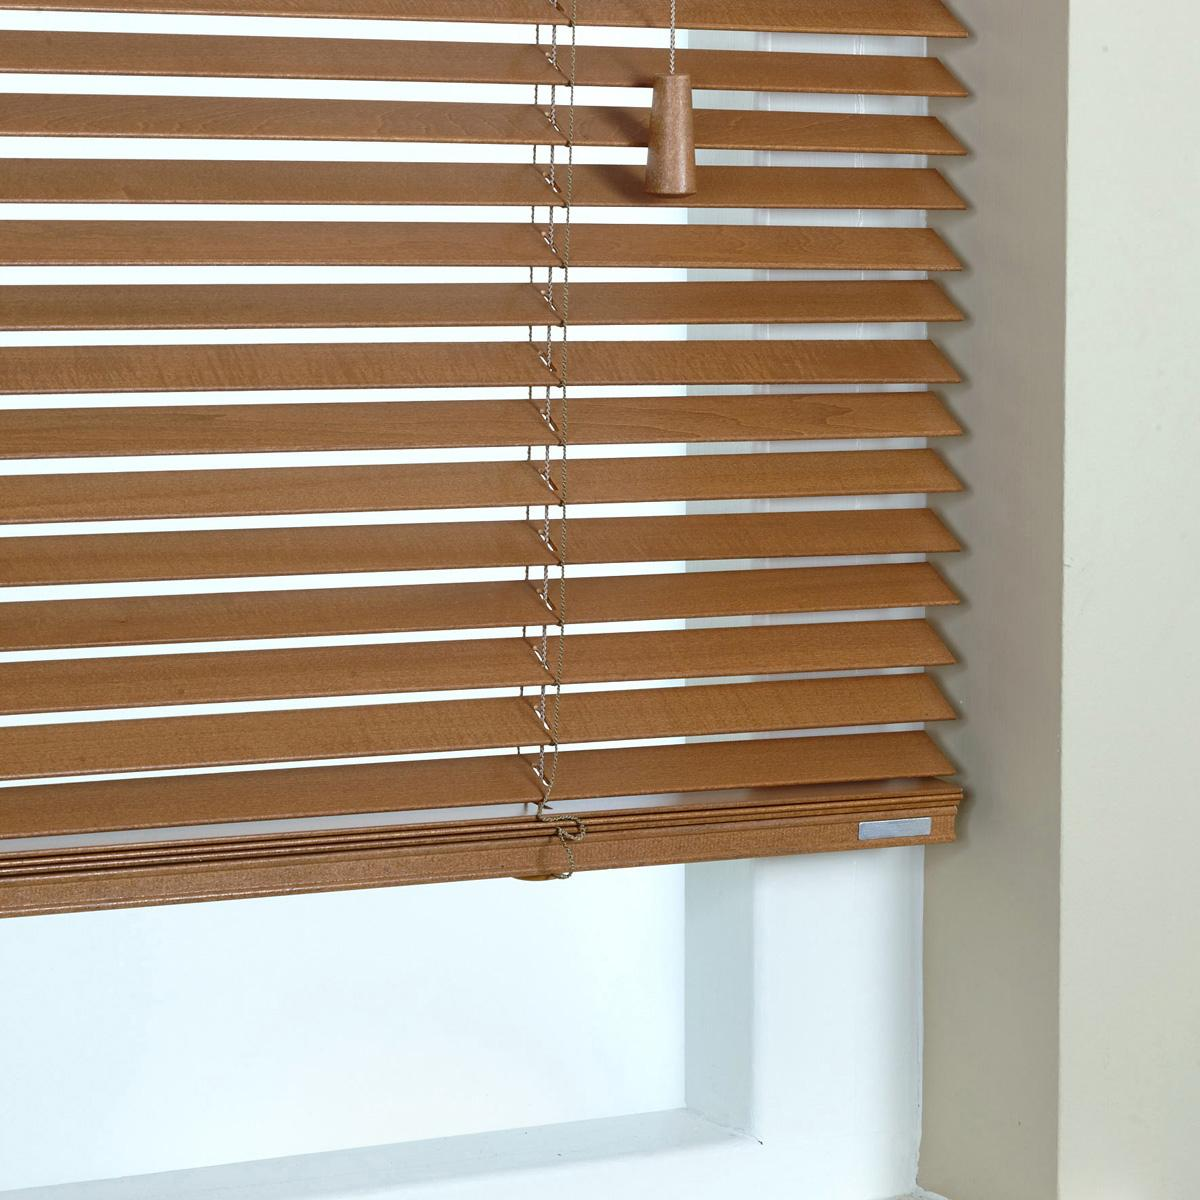 Stockists of Honey 25mm Elementi Wood Venetian Blind